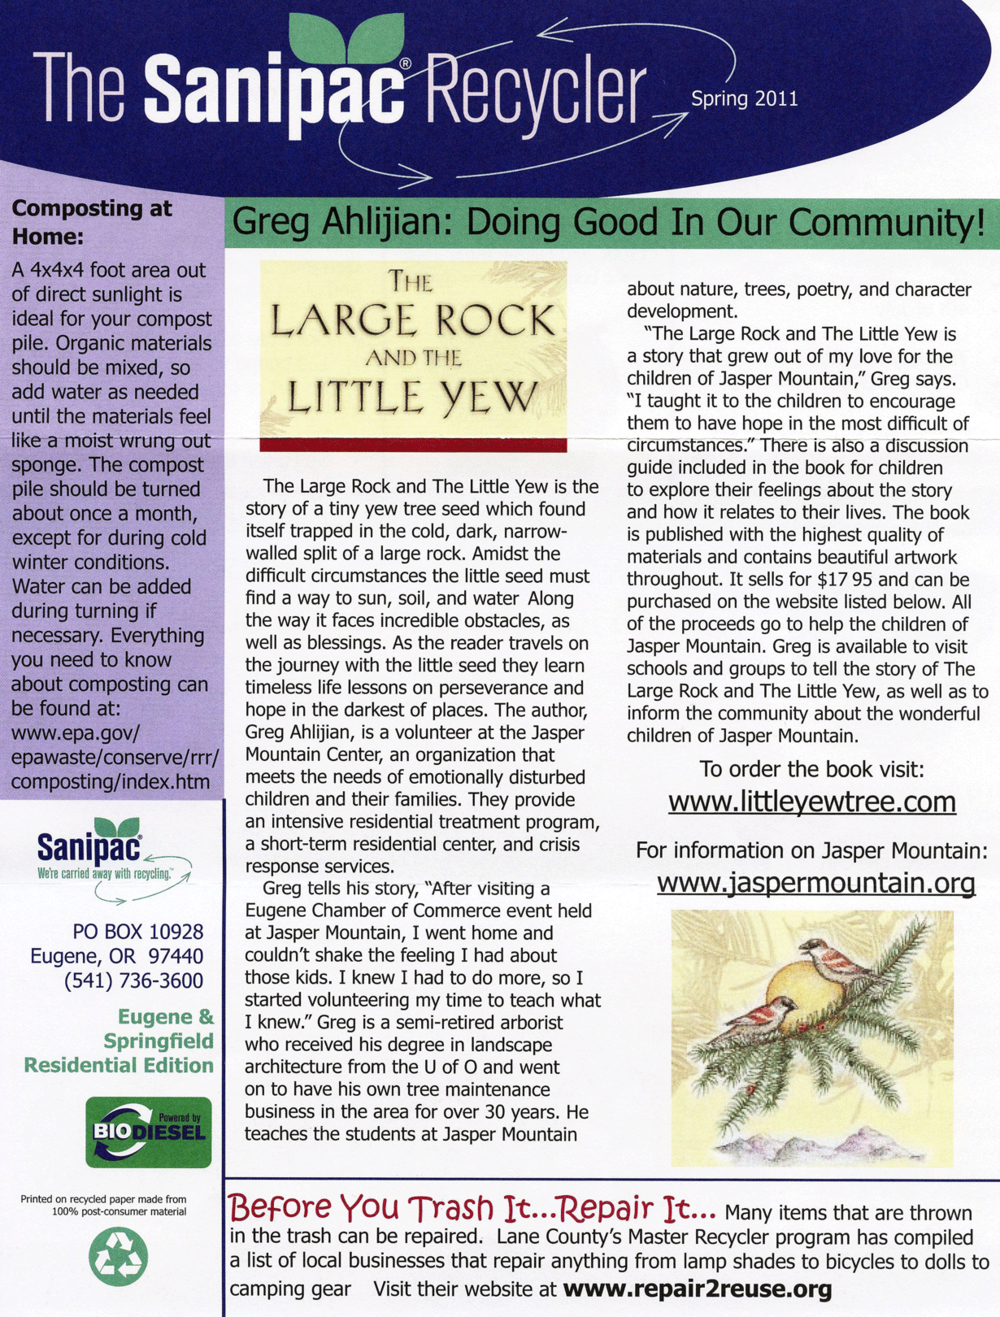 Greg-Ahlijian_Press-002_Sanipac-Newsletter-Spring-2011.png